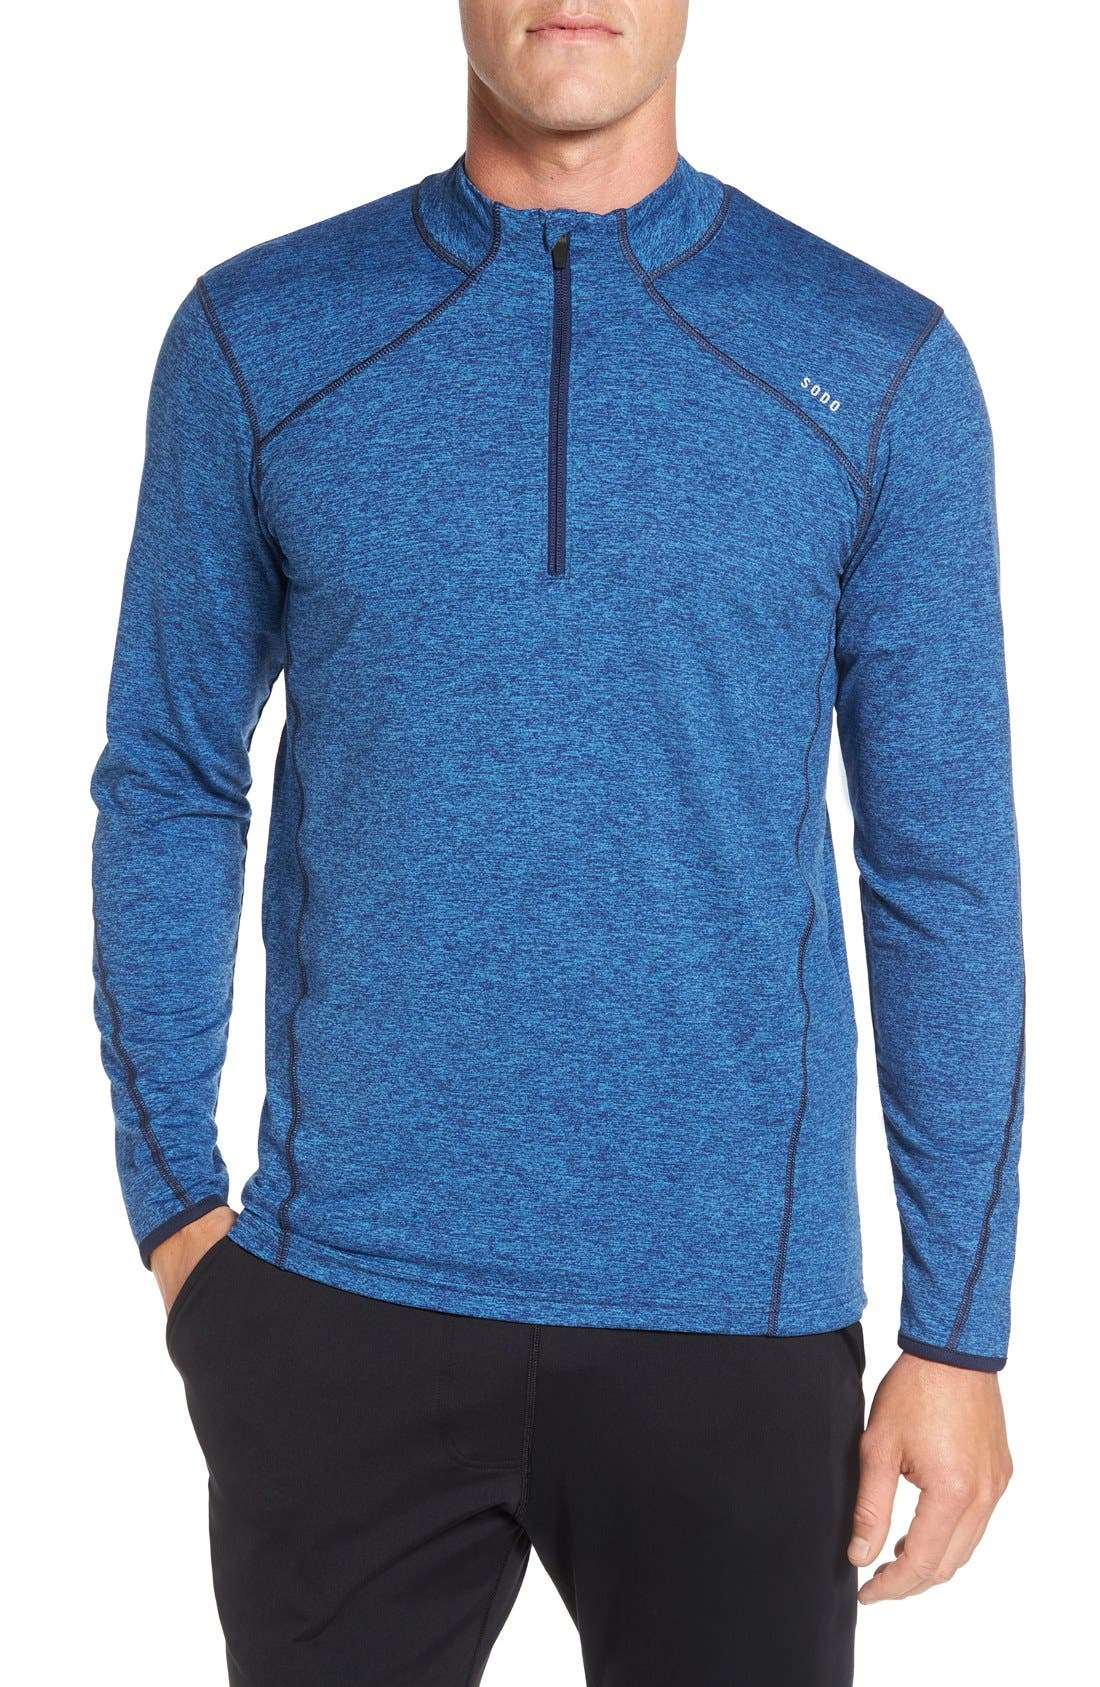 'Elevate' Moisture Wicking Stretch Quarter Zip Pullover,                             Main thumbnail 1, color,                             Ocean Blue/ Navy